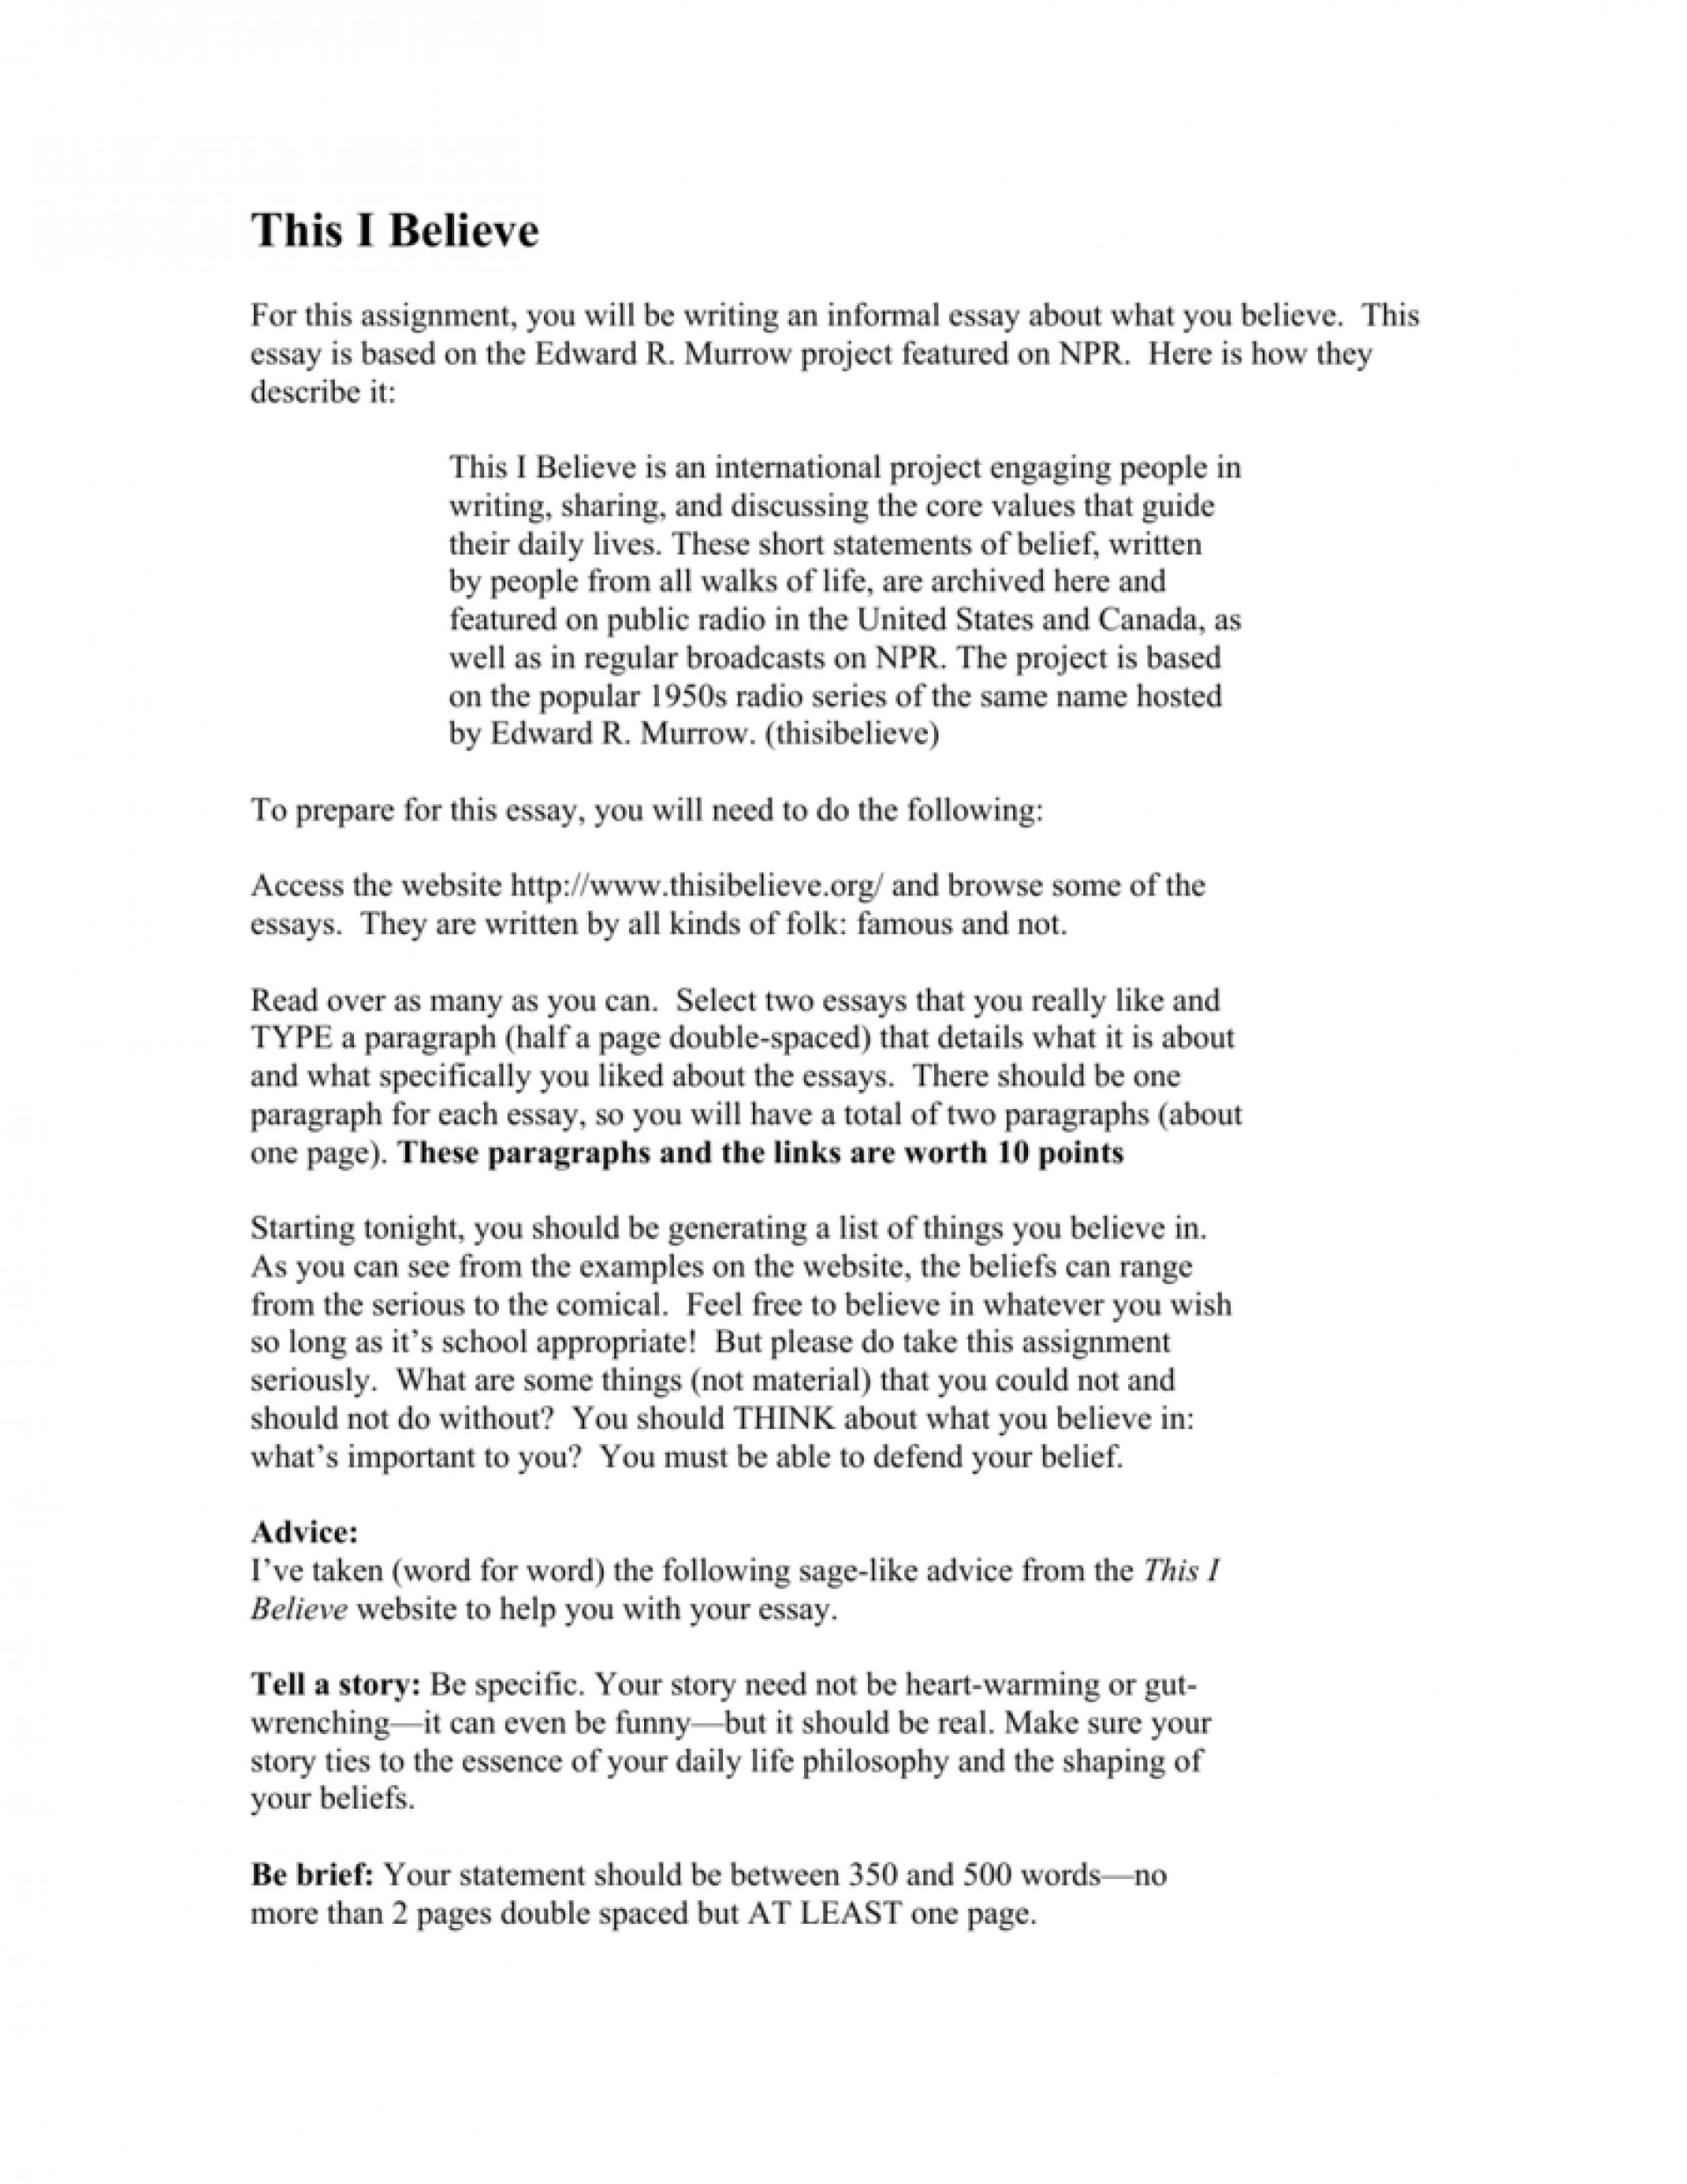 005 Essay Example This I Believe Essays 008807220 1 Dreaded By High School Students Npr 1920